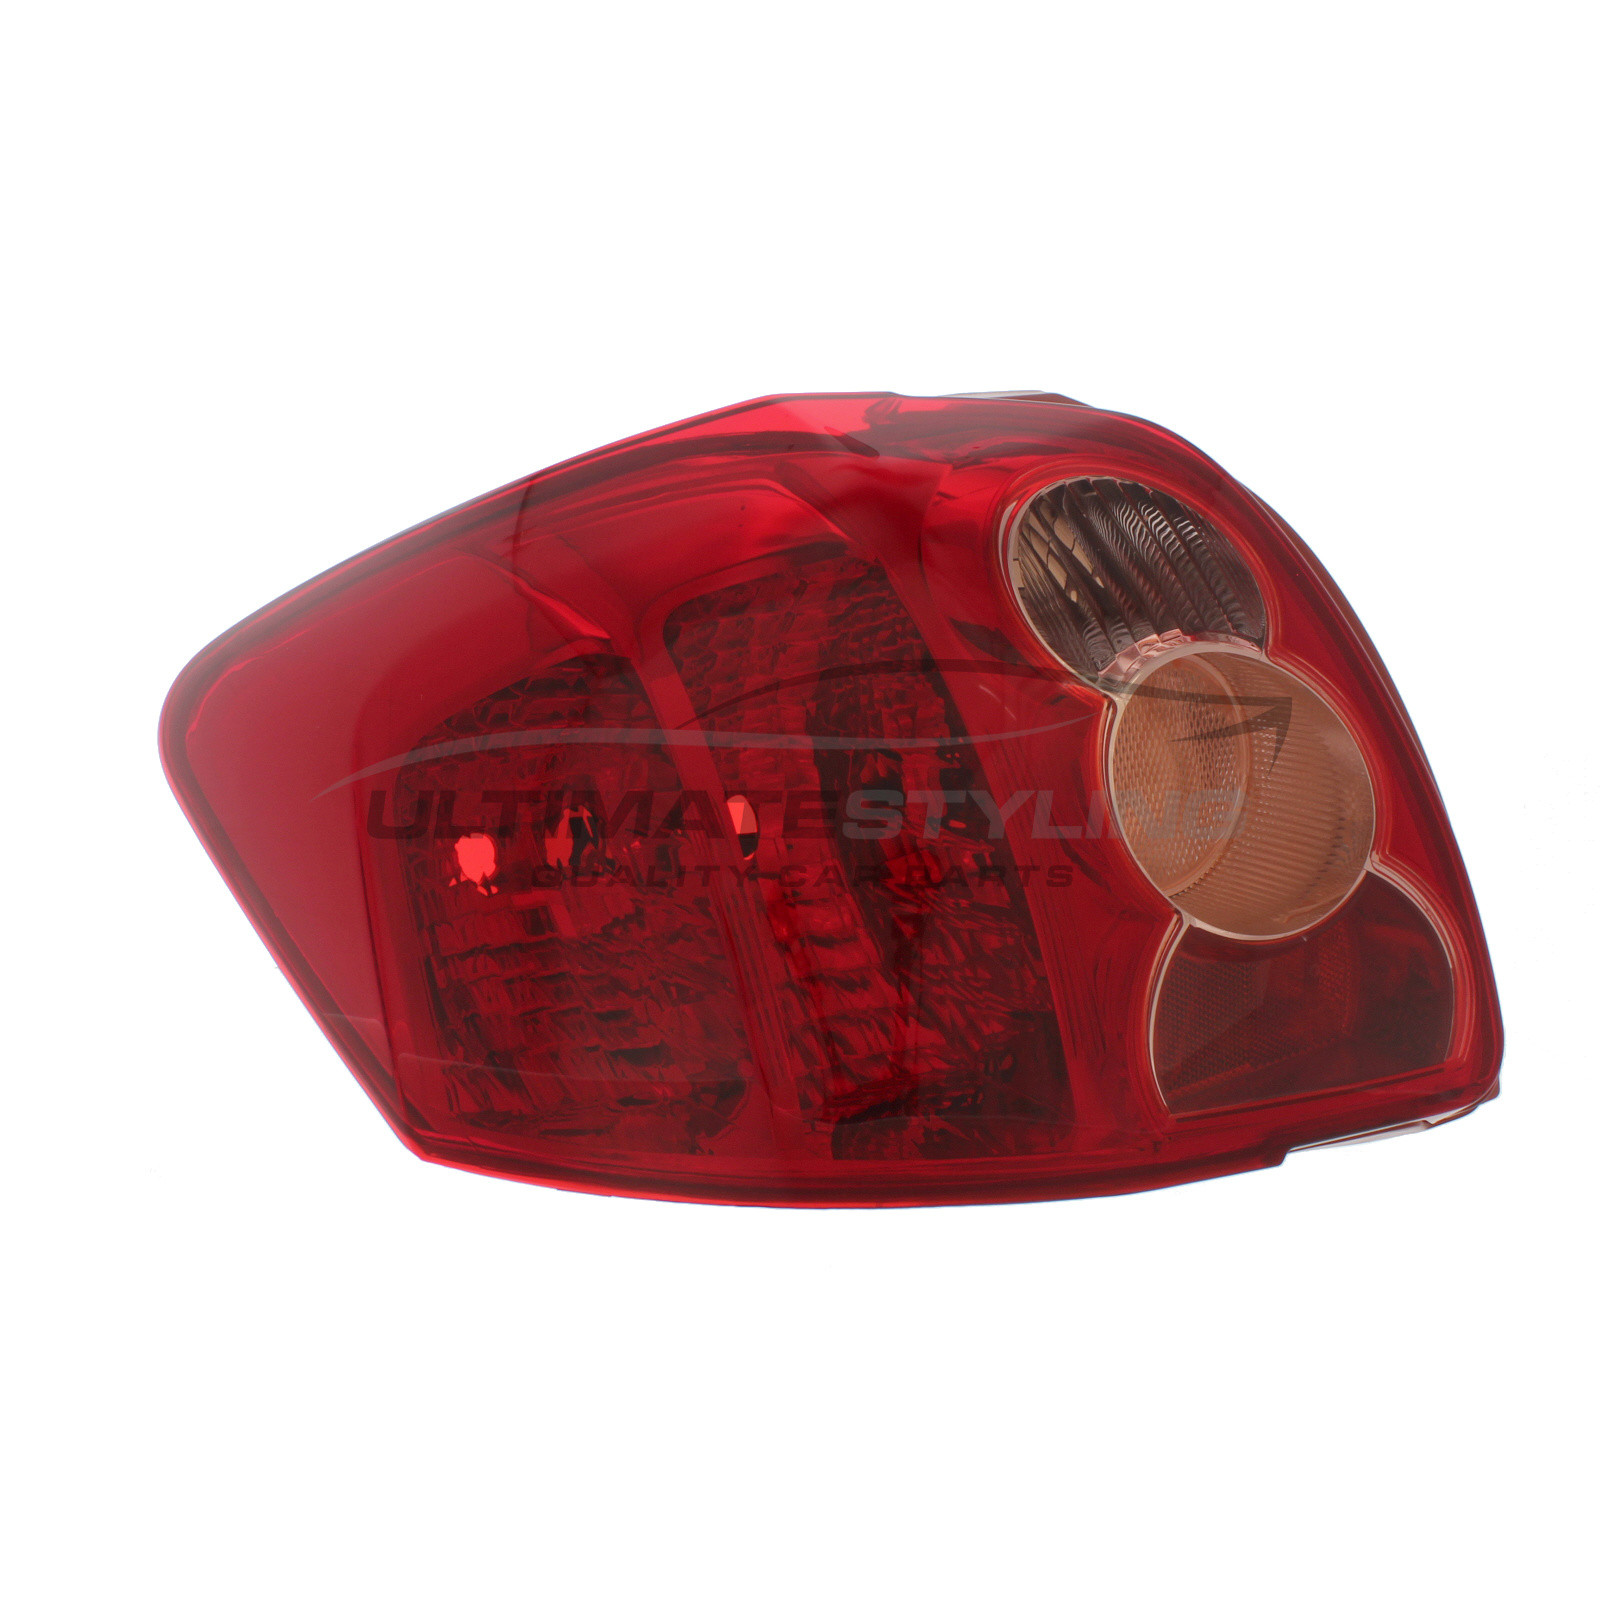 s 81561-02370 Ultimate Styling Aftermarket Non-LED Rear Tail Light Lamp Without Bulb Holder Bulb Type W16W P21W R5W PY21W Side Of Product Passenger Side Reference OE//OEM Number LH s